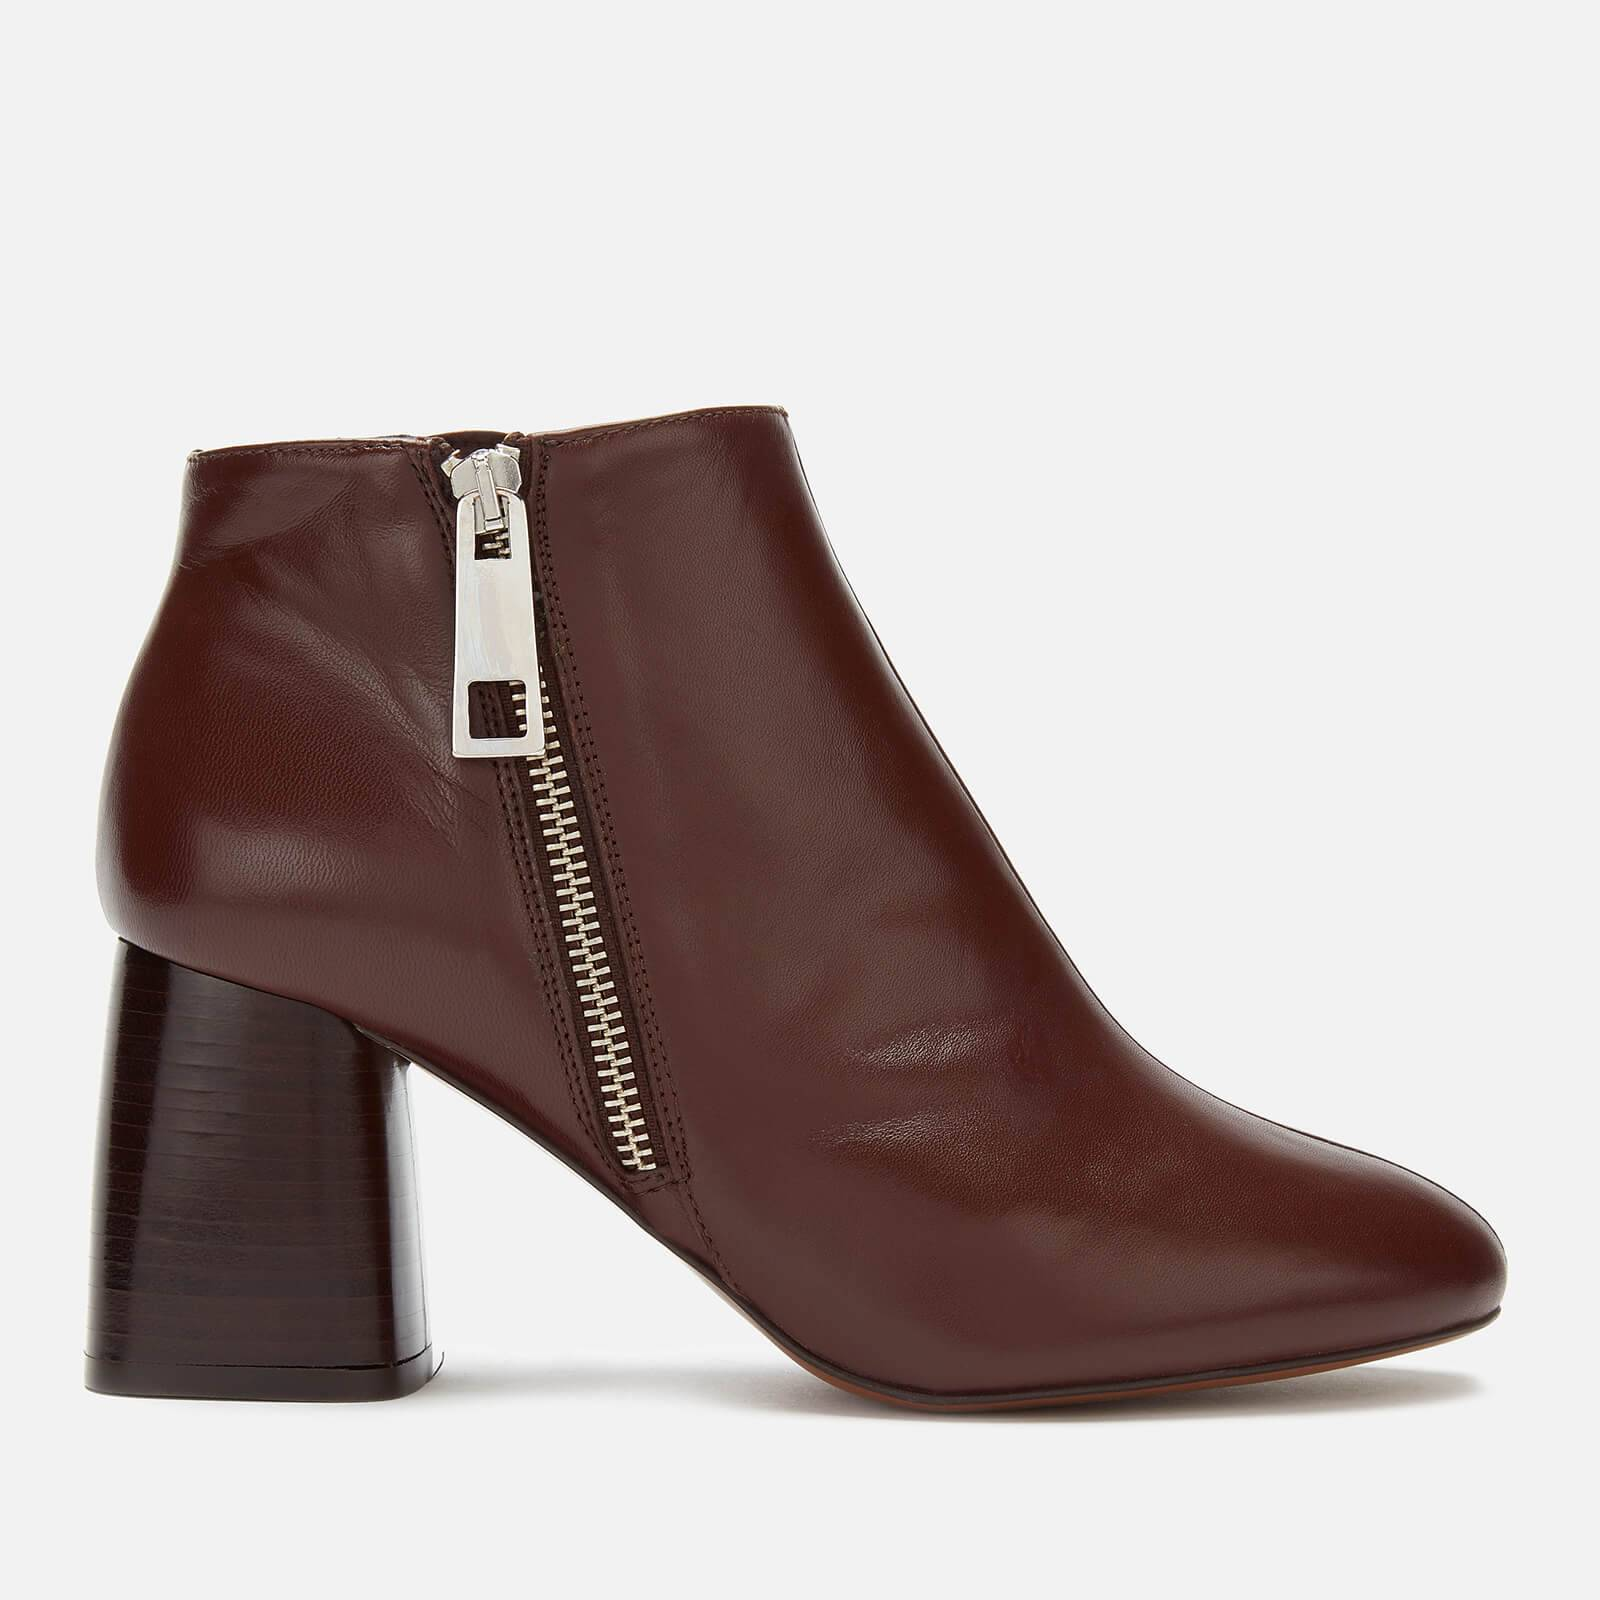 Whistles Women's Pippa Side Zip Boots - Brown - UK 6